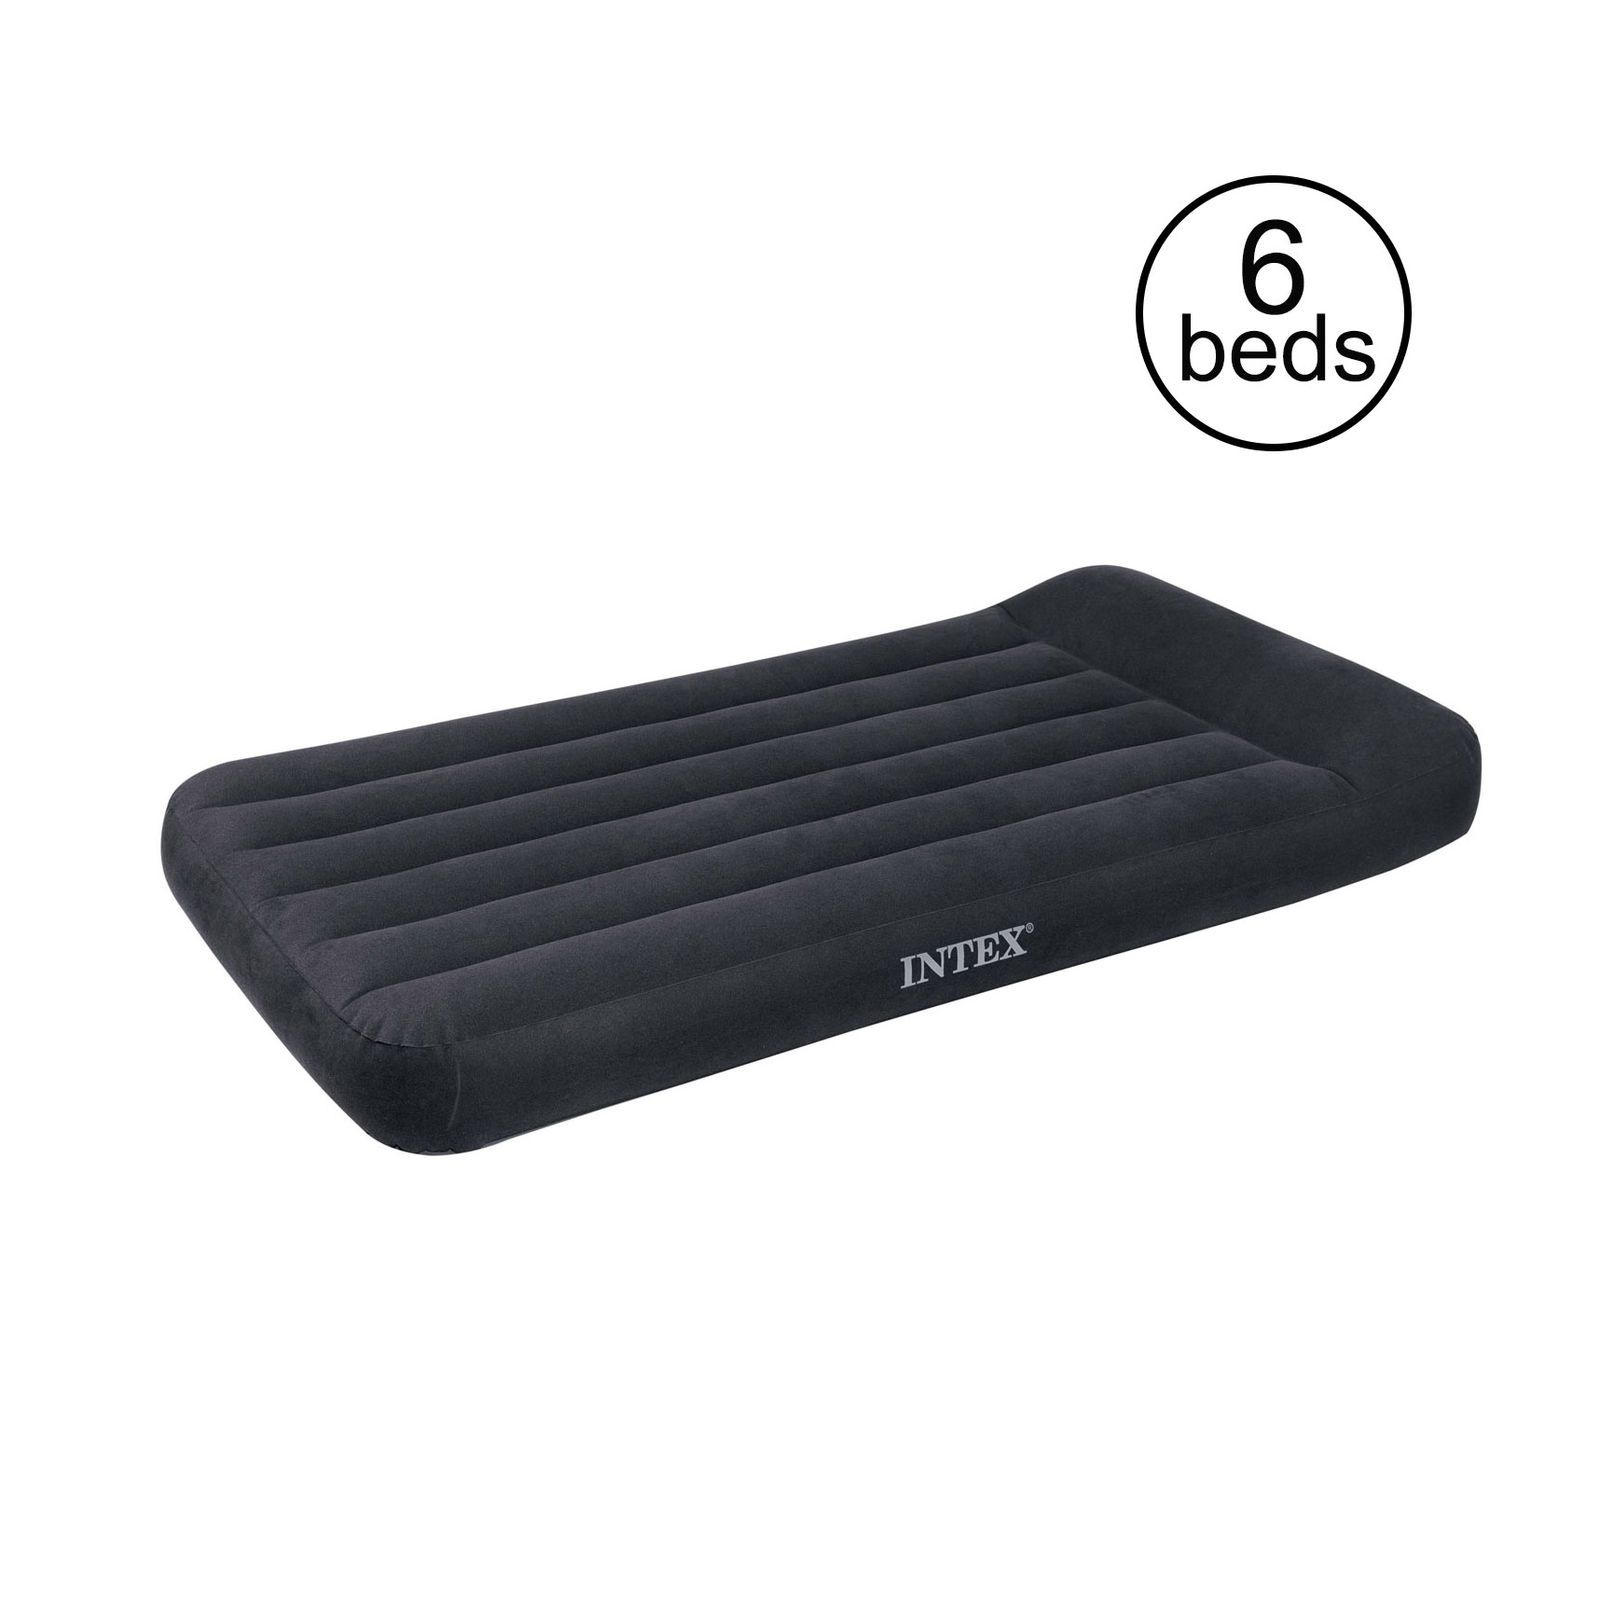 Intex Twin Classic Pillow Rest Air Mattress Bed With Built In Pump